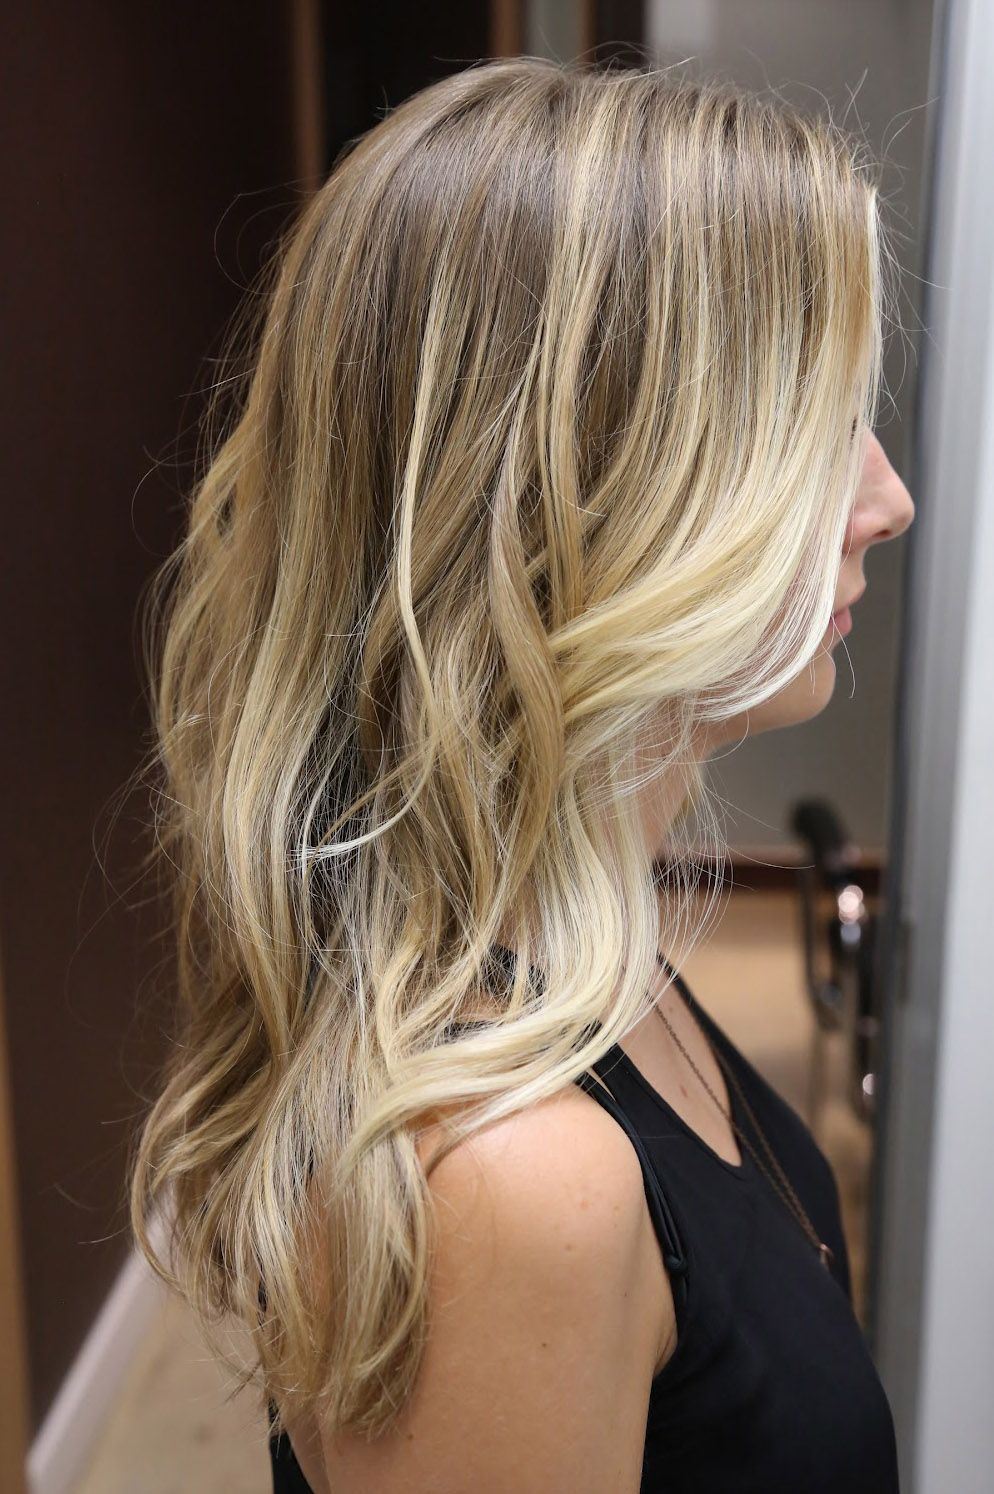 Blonde hair ways to care for your golden locks blondes lights